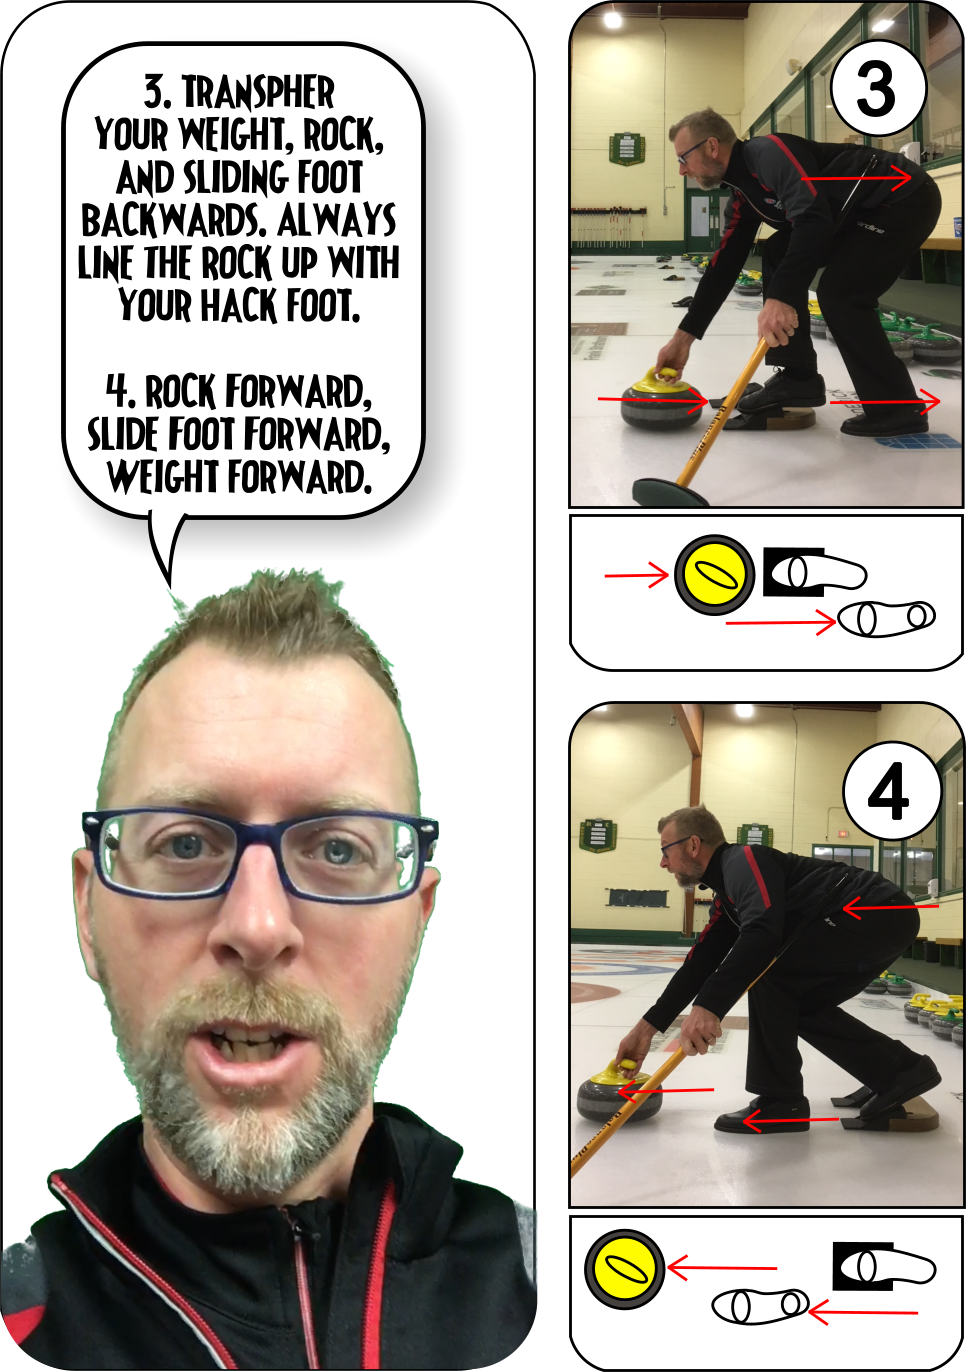 Curling slide fundamentals.